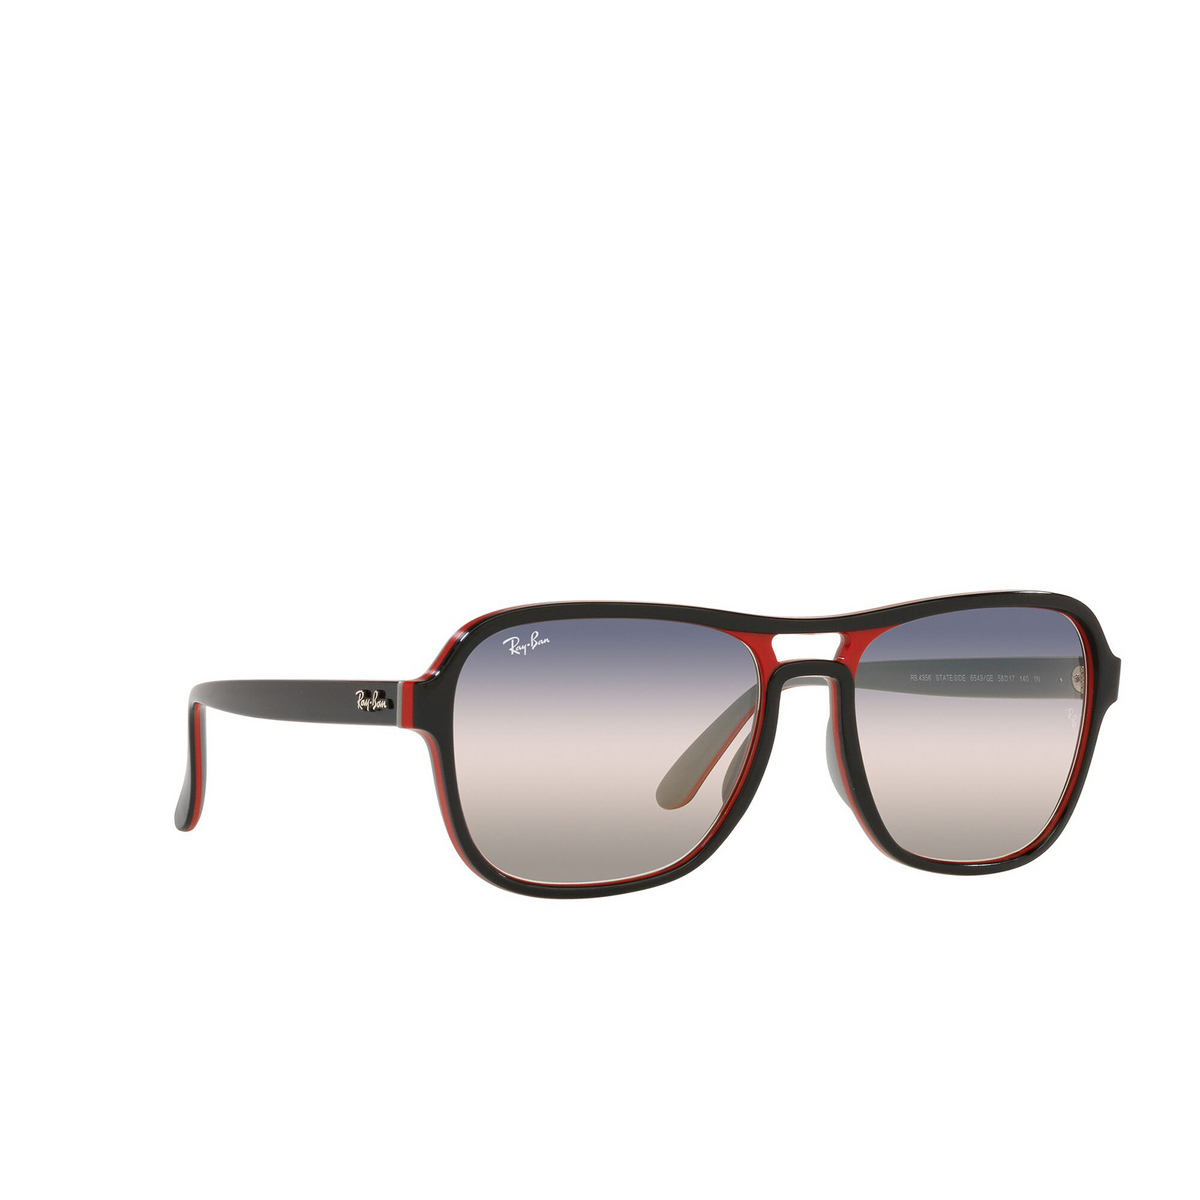 Ray-Ban® Square Sunglasses: State Side RB4356 color Black Red Light Gray 6549GE - three-quarters view.